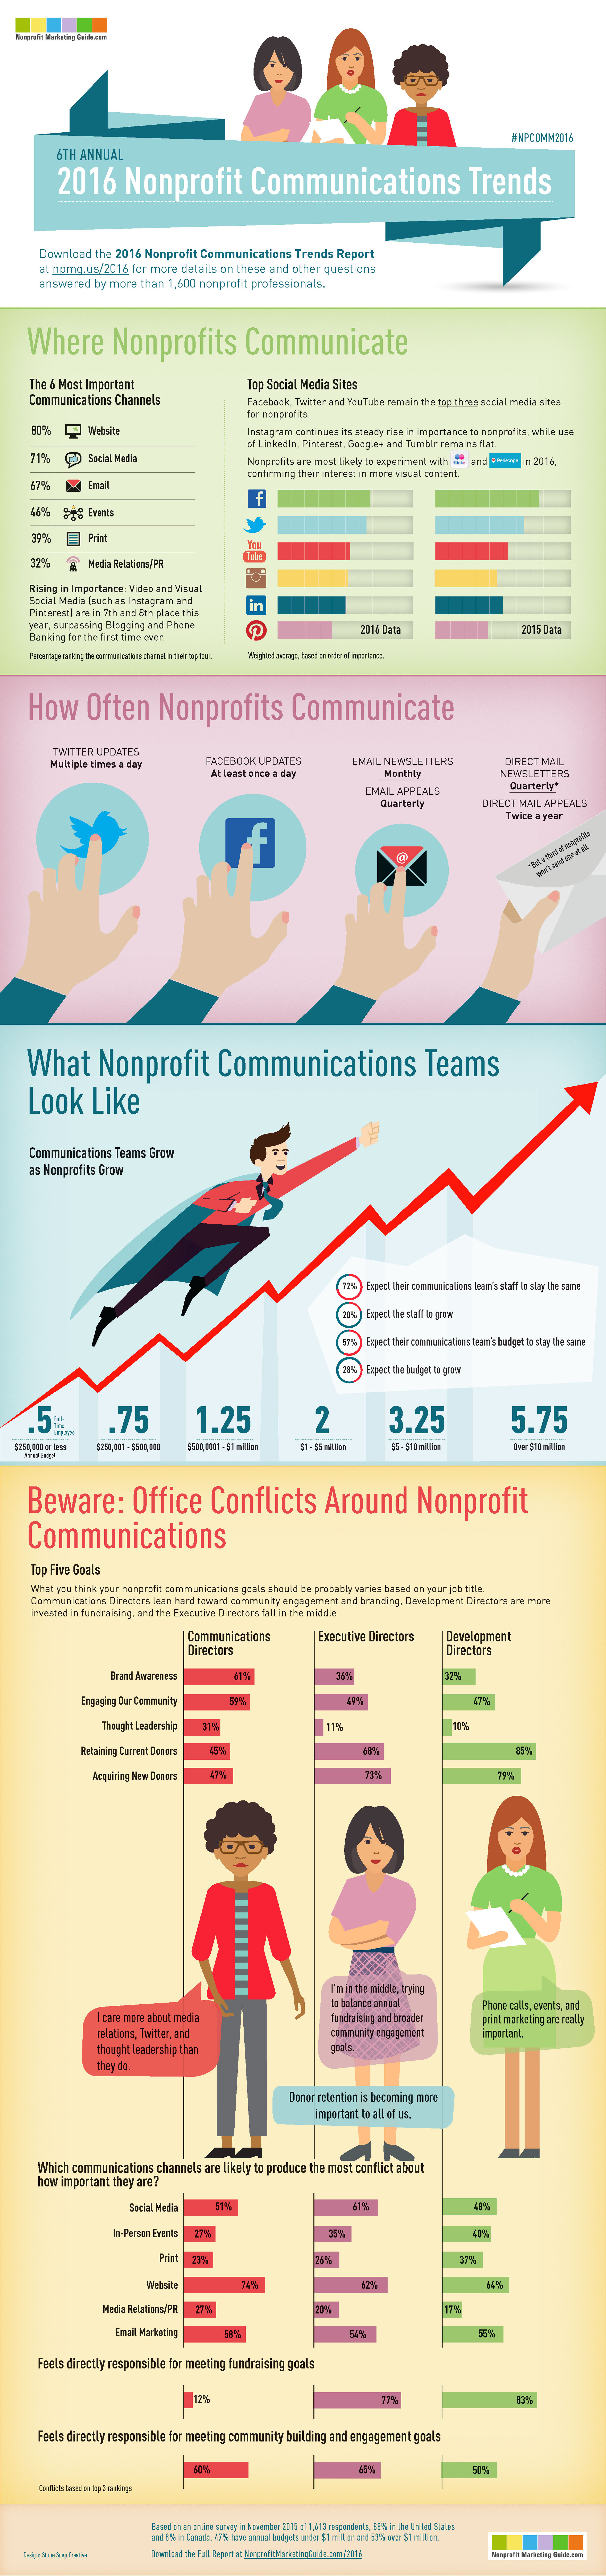 2016-Nonprofit-Communications-Trends-Infographic.jpg